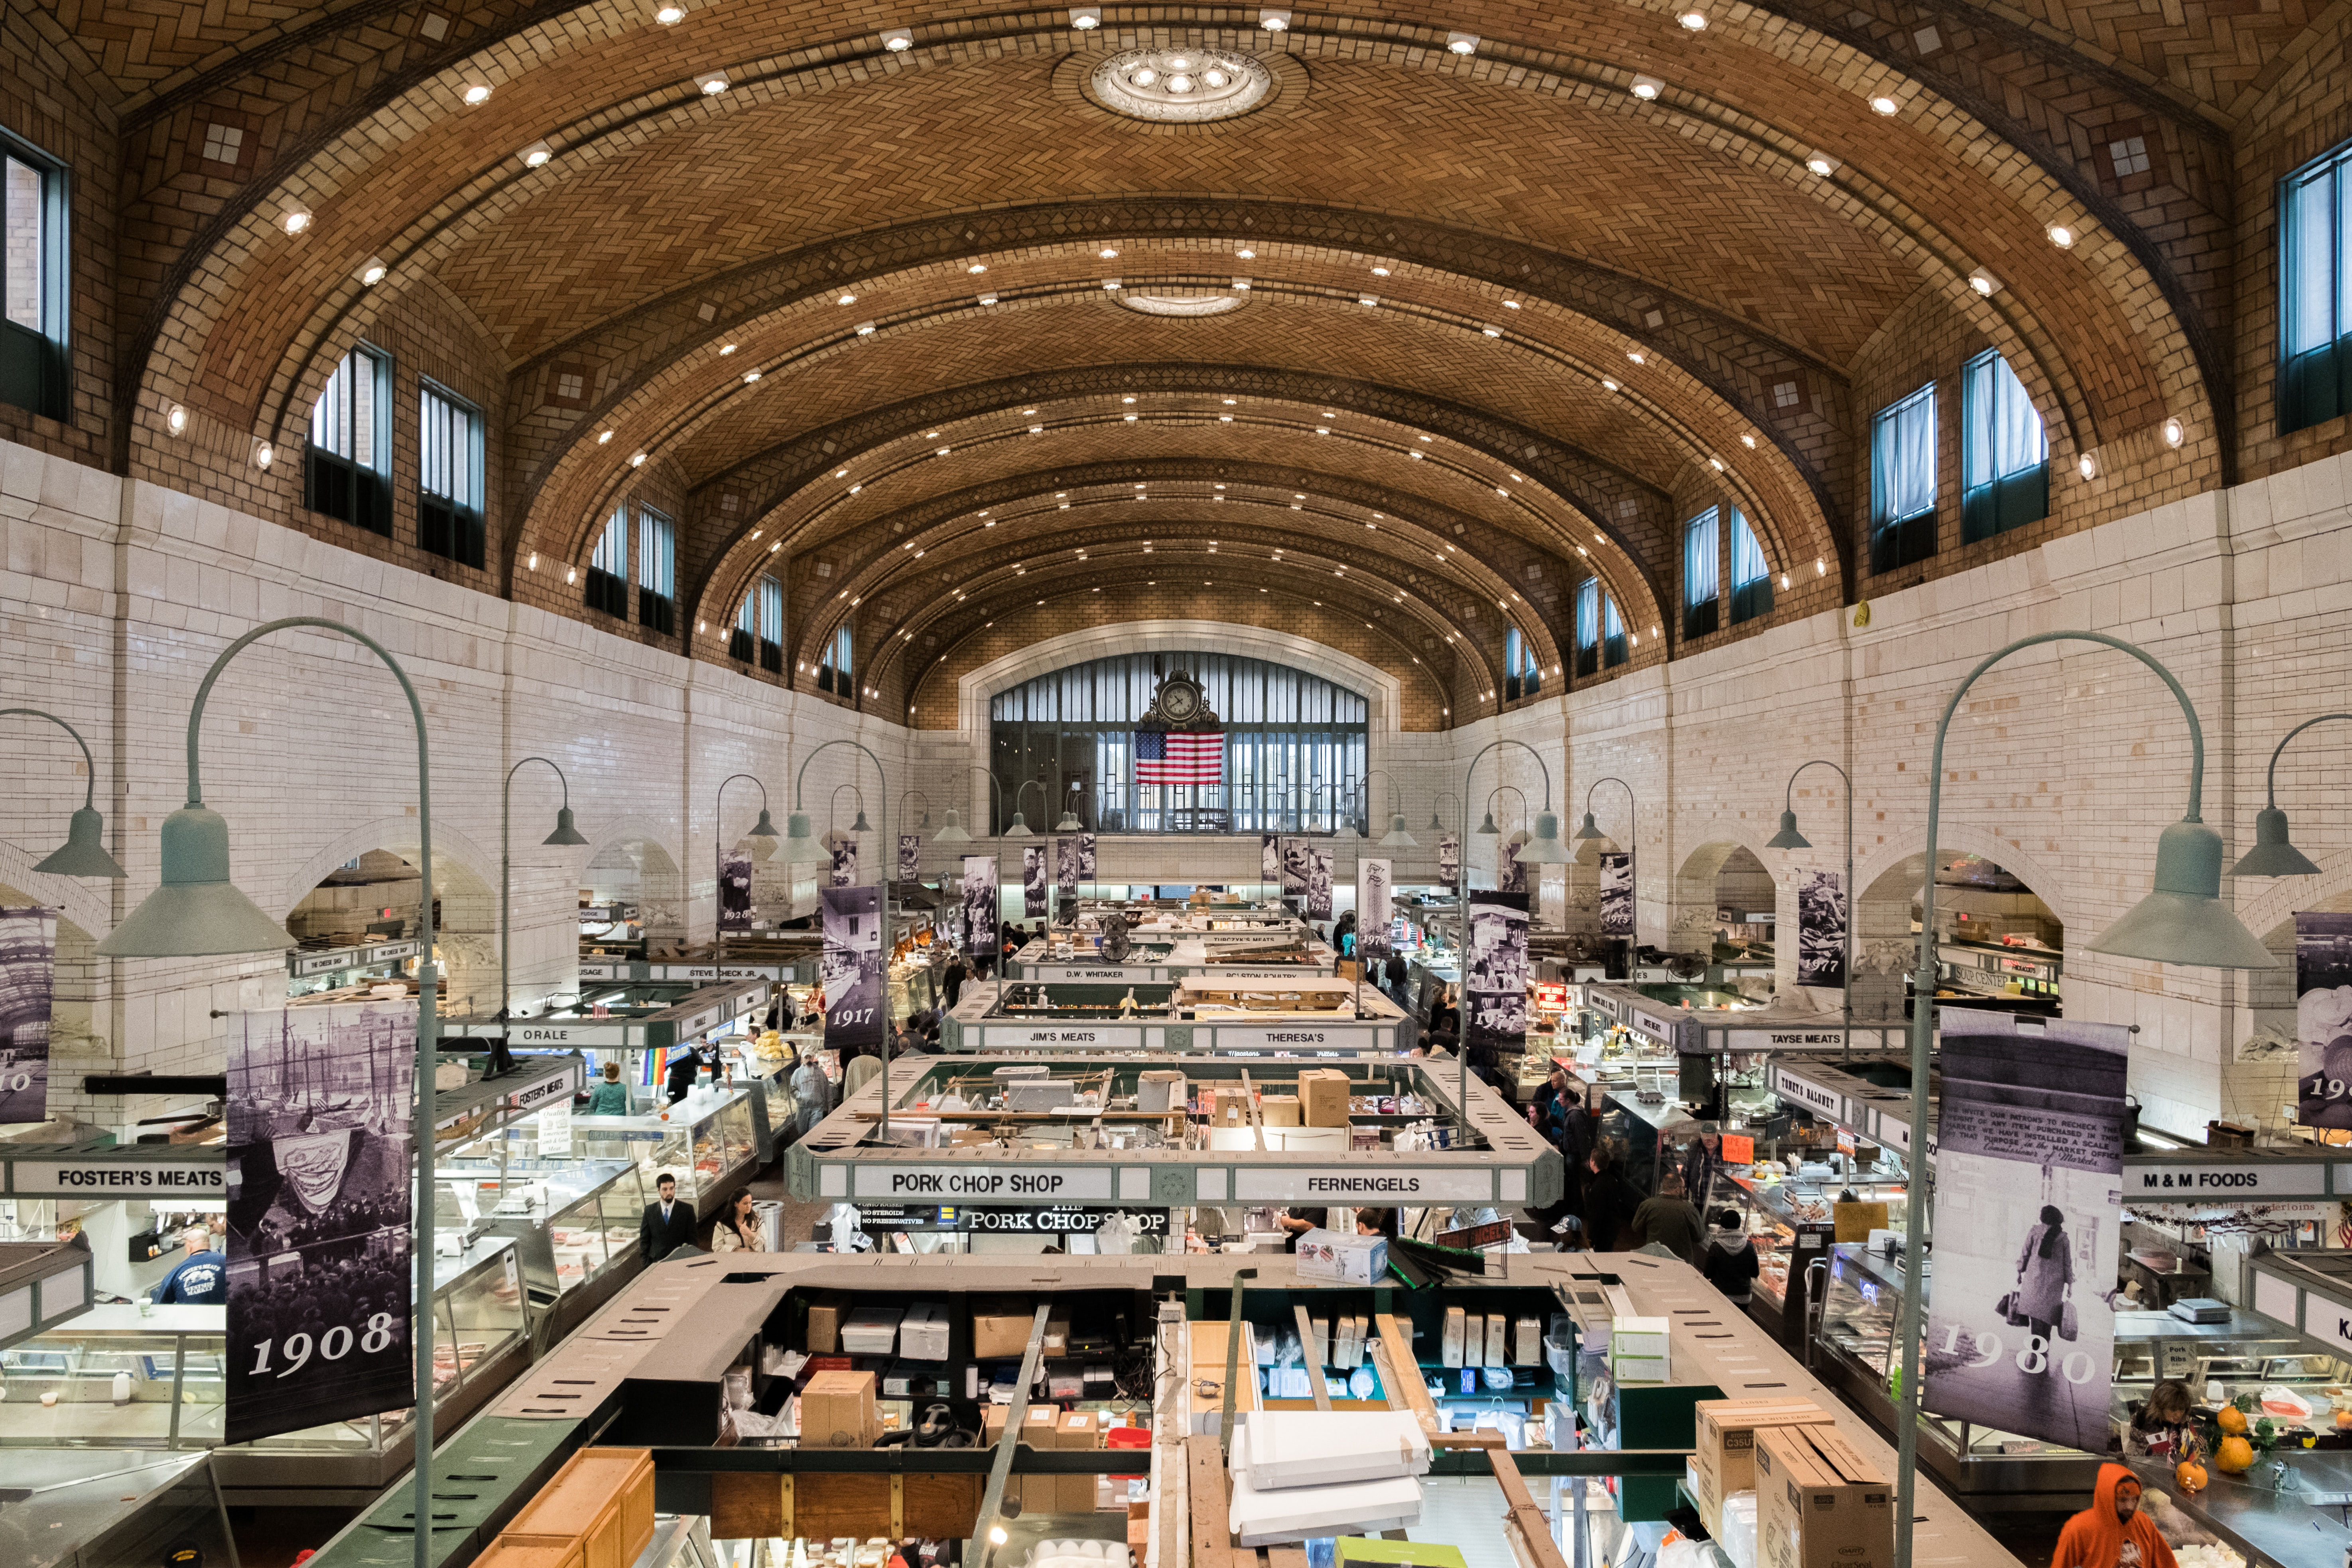 Inside an ornate food market with produce vendors